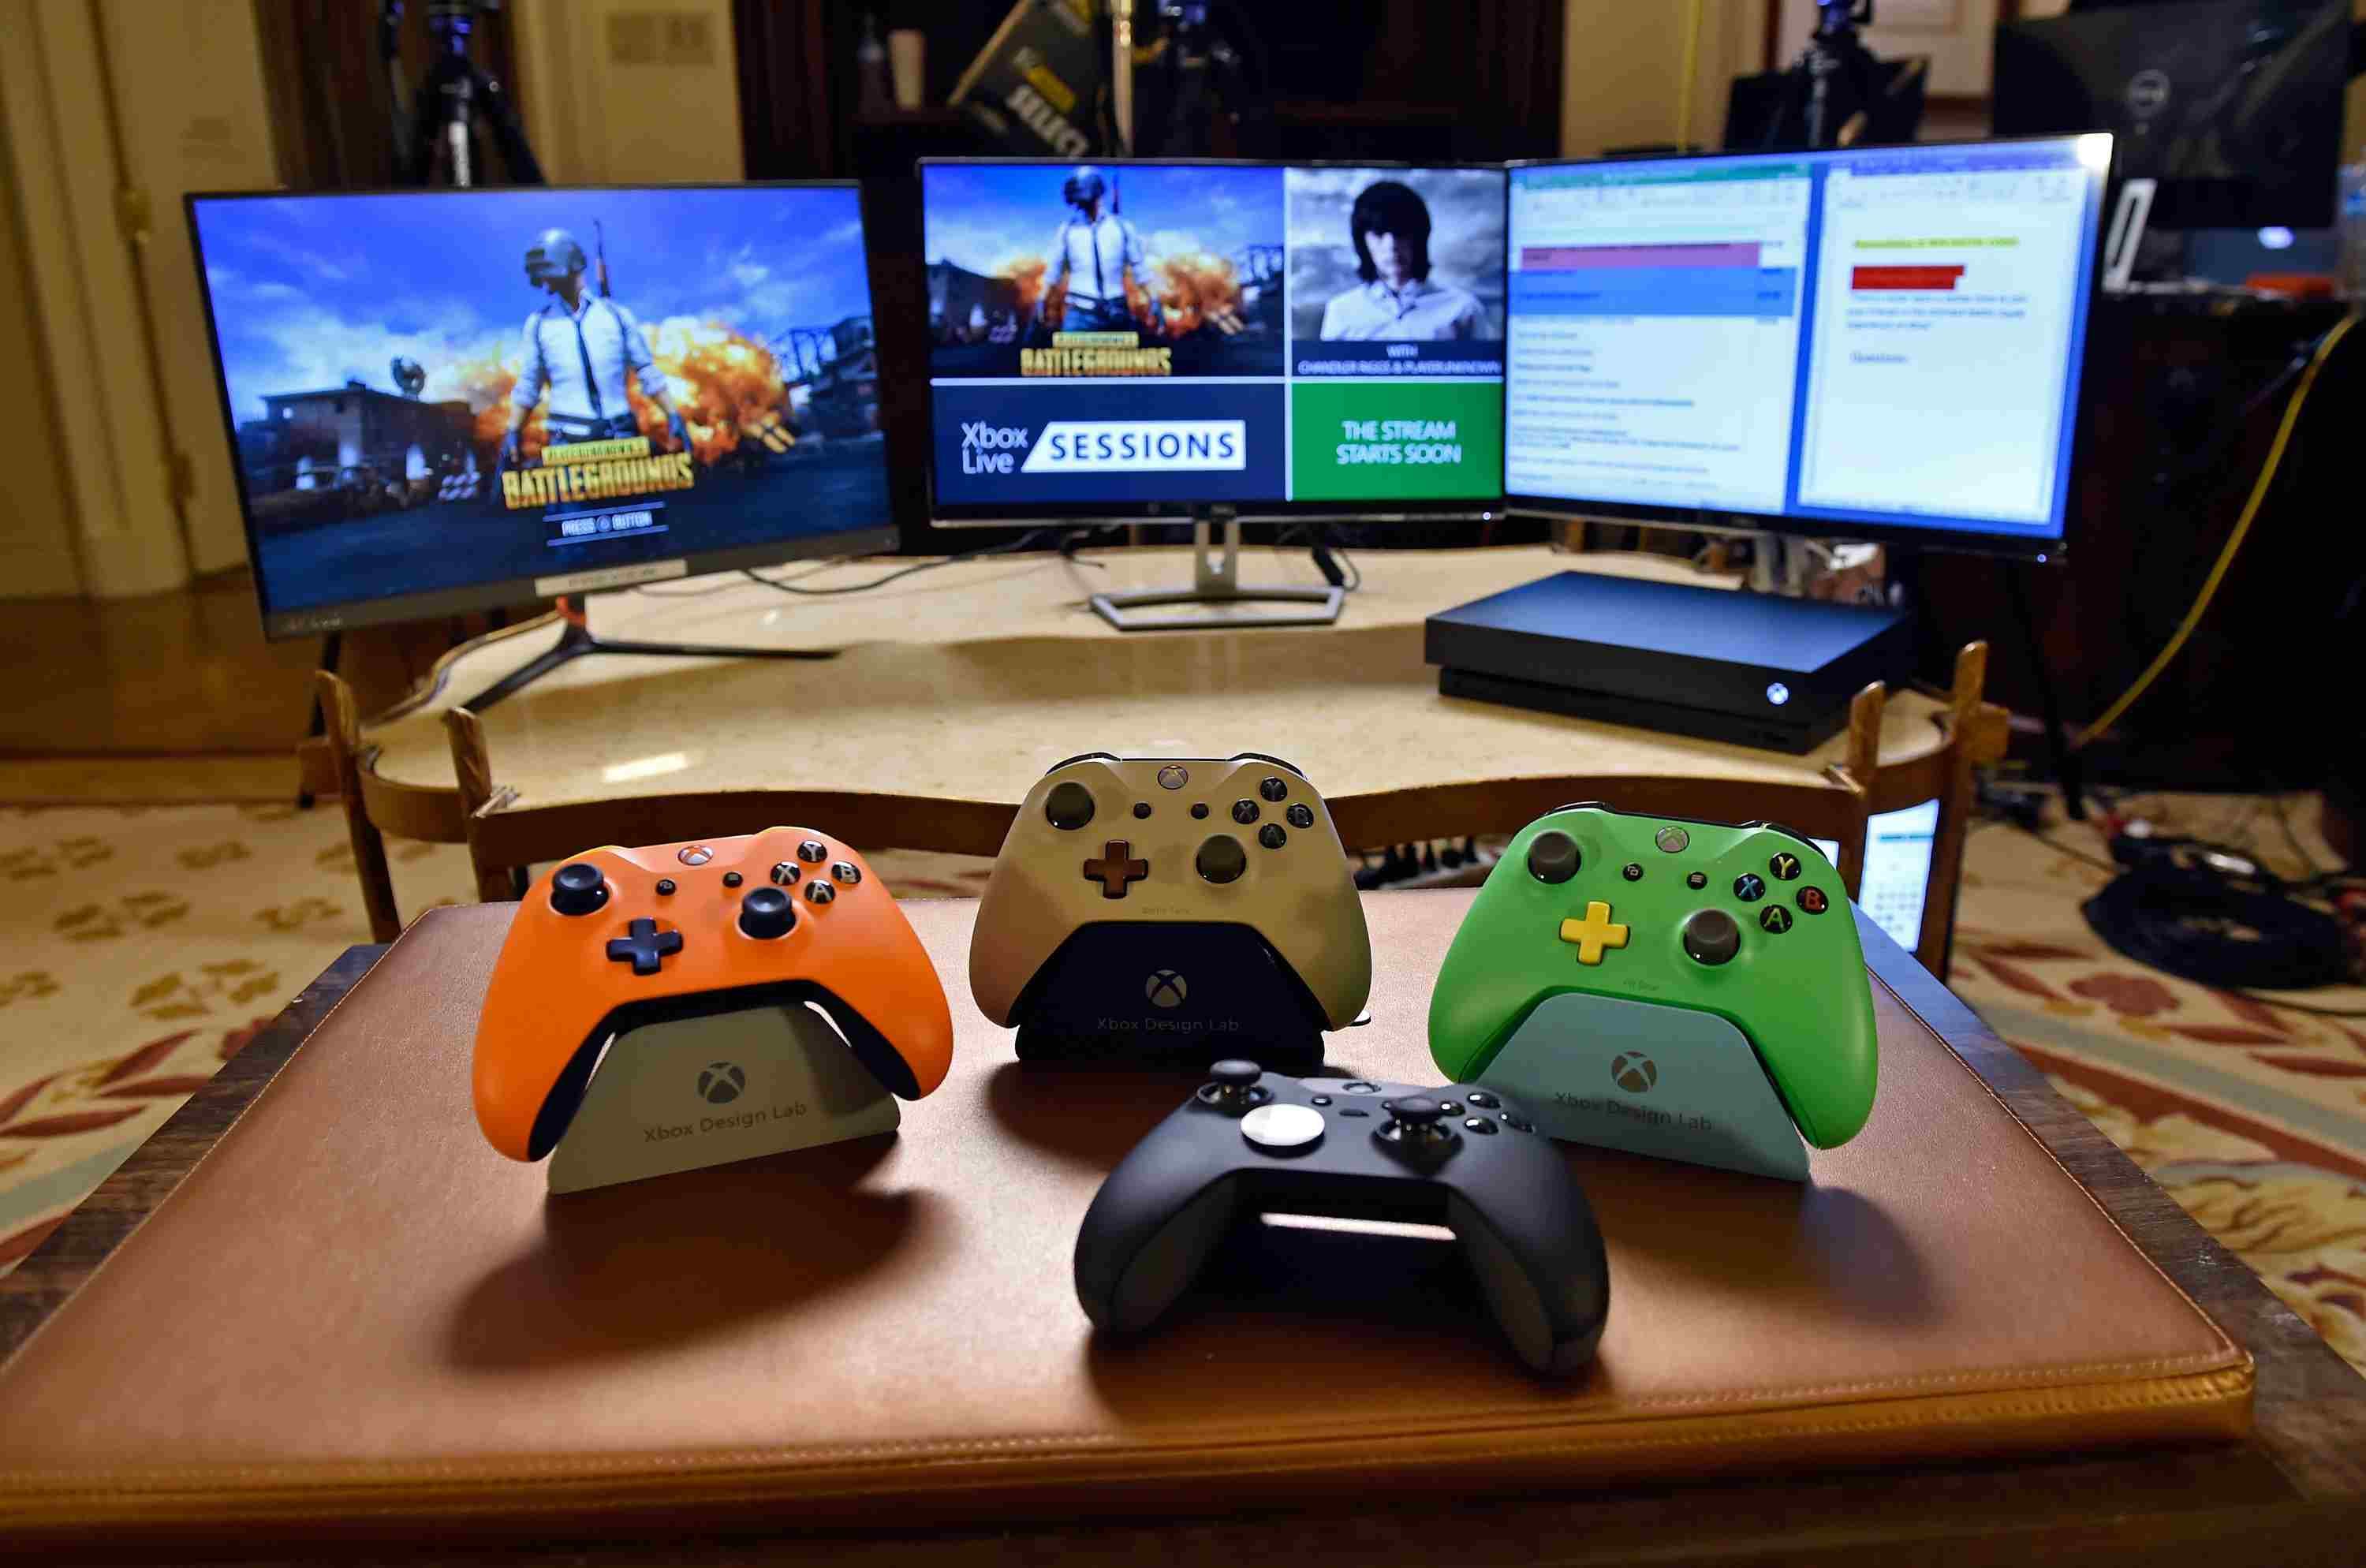 Pubg Xbox One Controls Server Connection Issues Plus: What To Do When Your Xbox One Controller Won't Connect